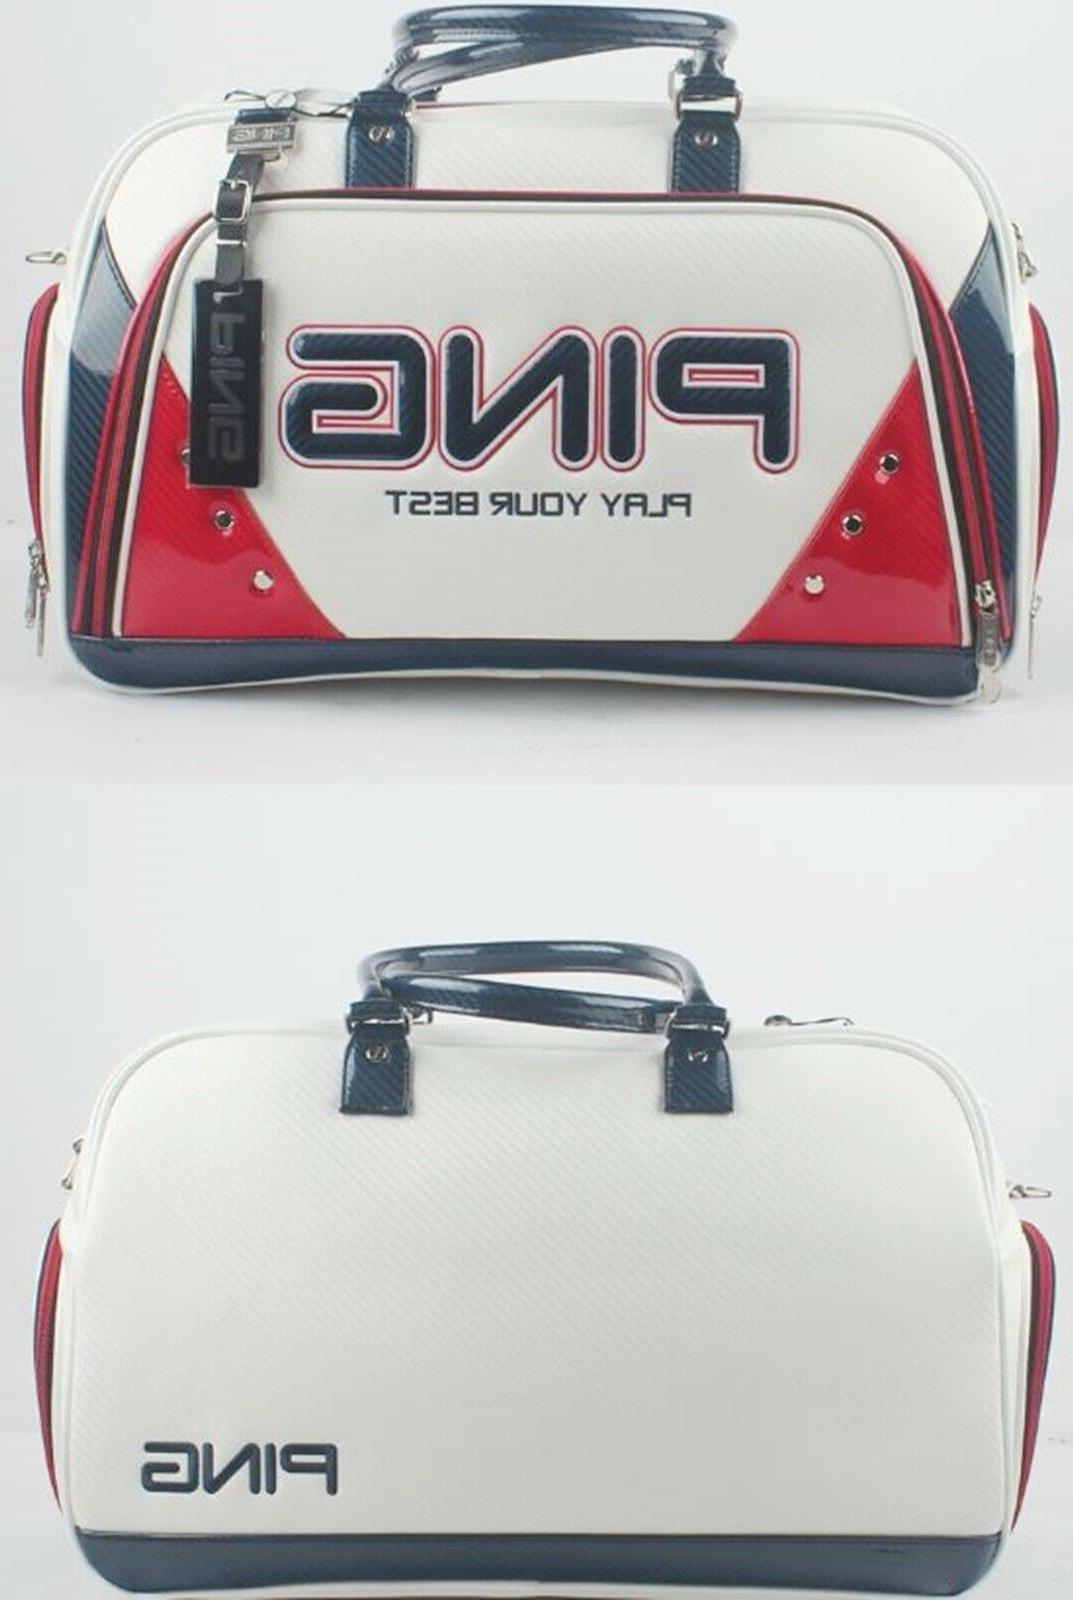 PING SPORTY Sports Carry 100% PU,1.8kg,Black/White